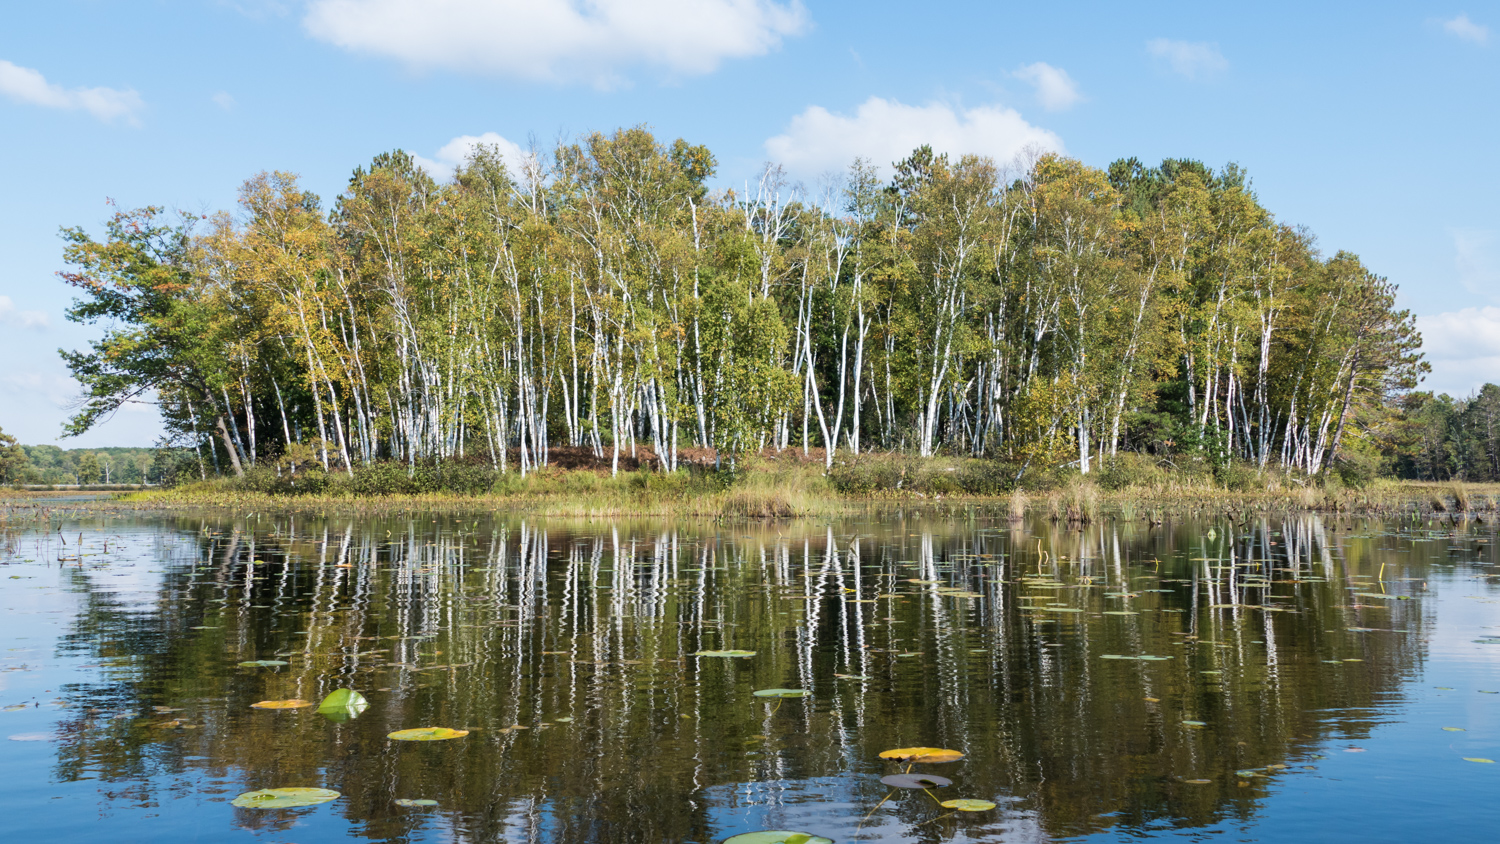 Reflections of a birch stand